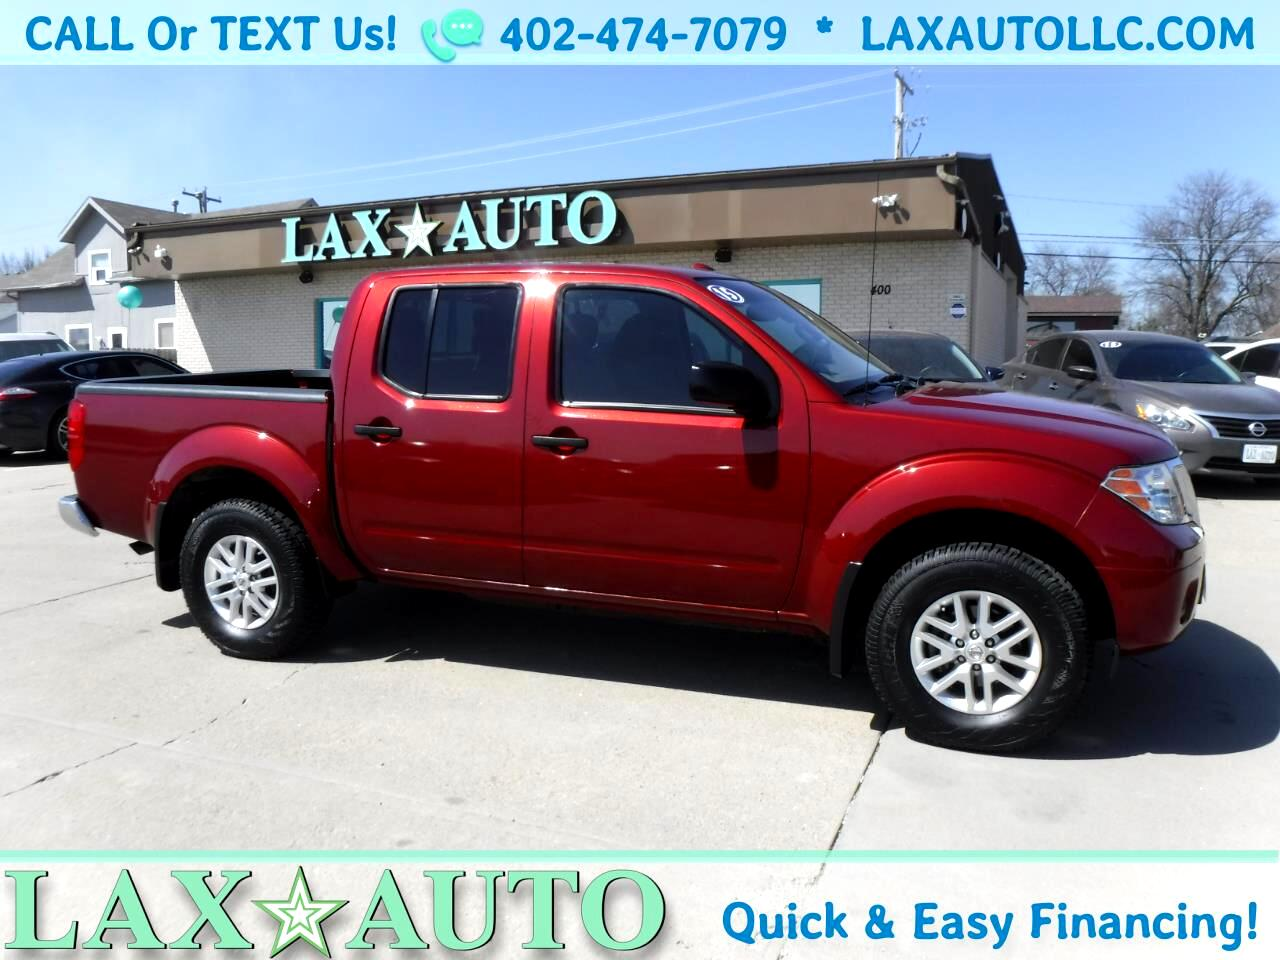 2015 Nissan Frontier SV Crew Cab 4WD * Only 36K Miles!